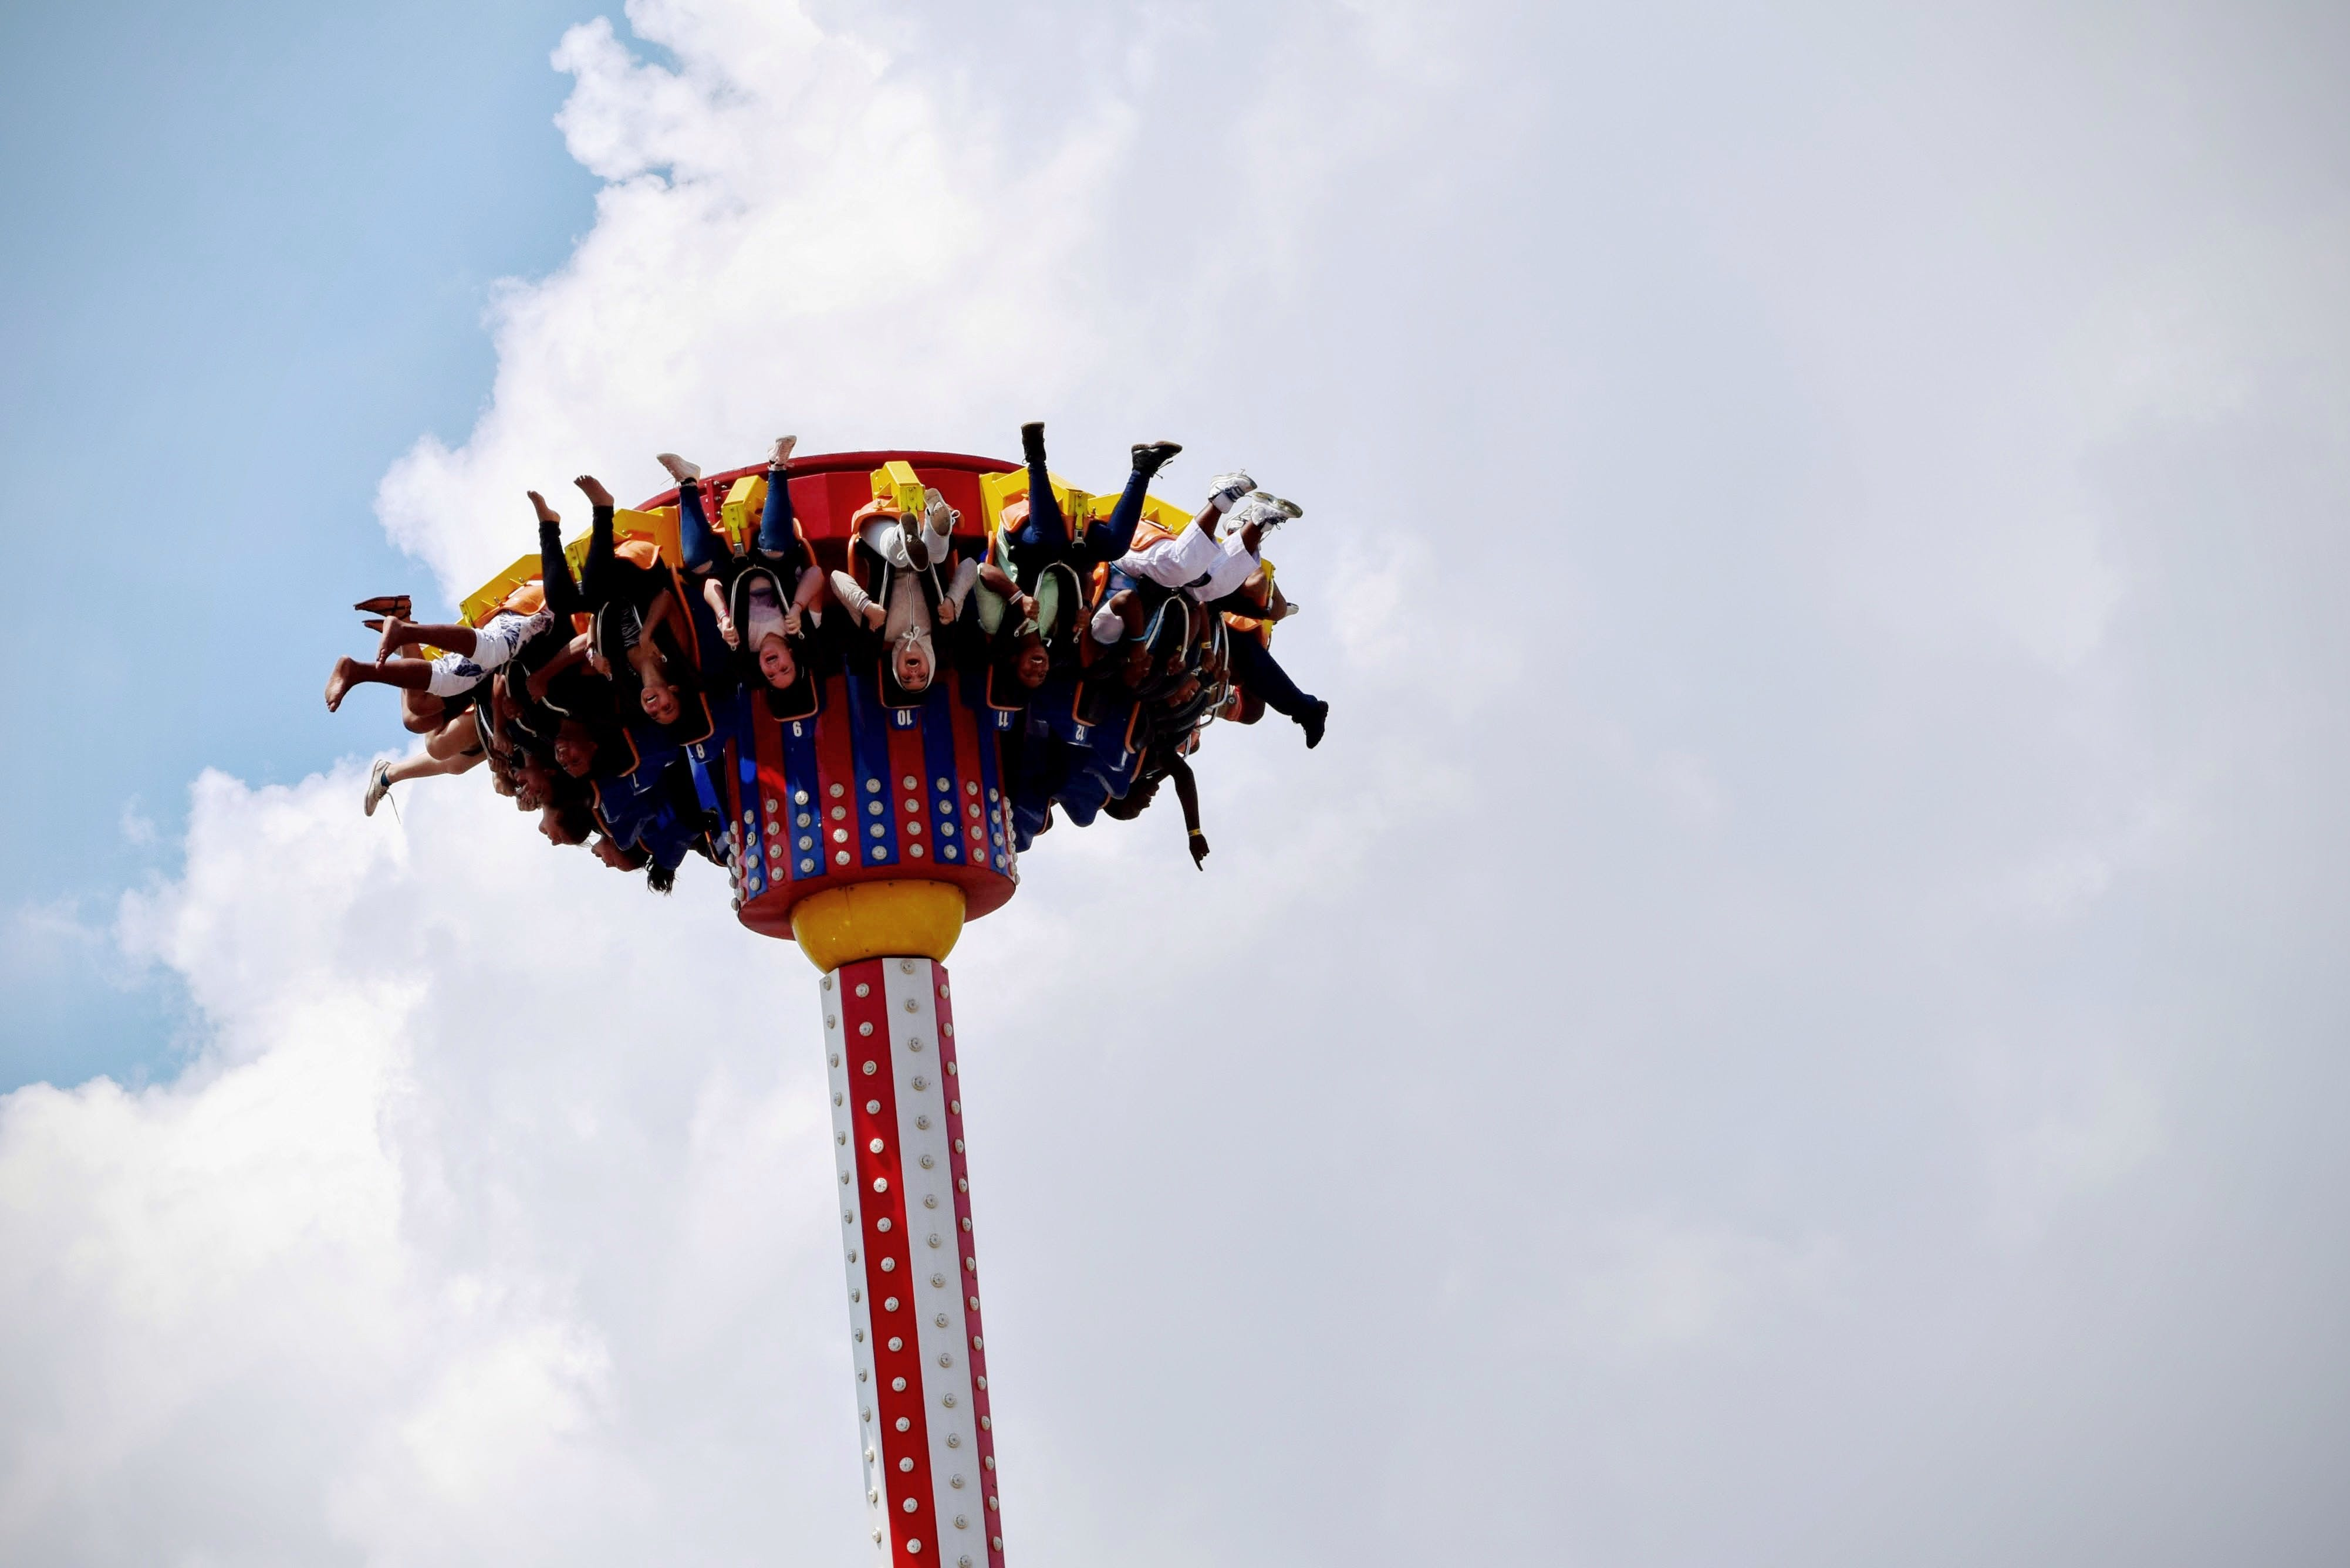 People Riding on White and Red Carnival Rides